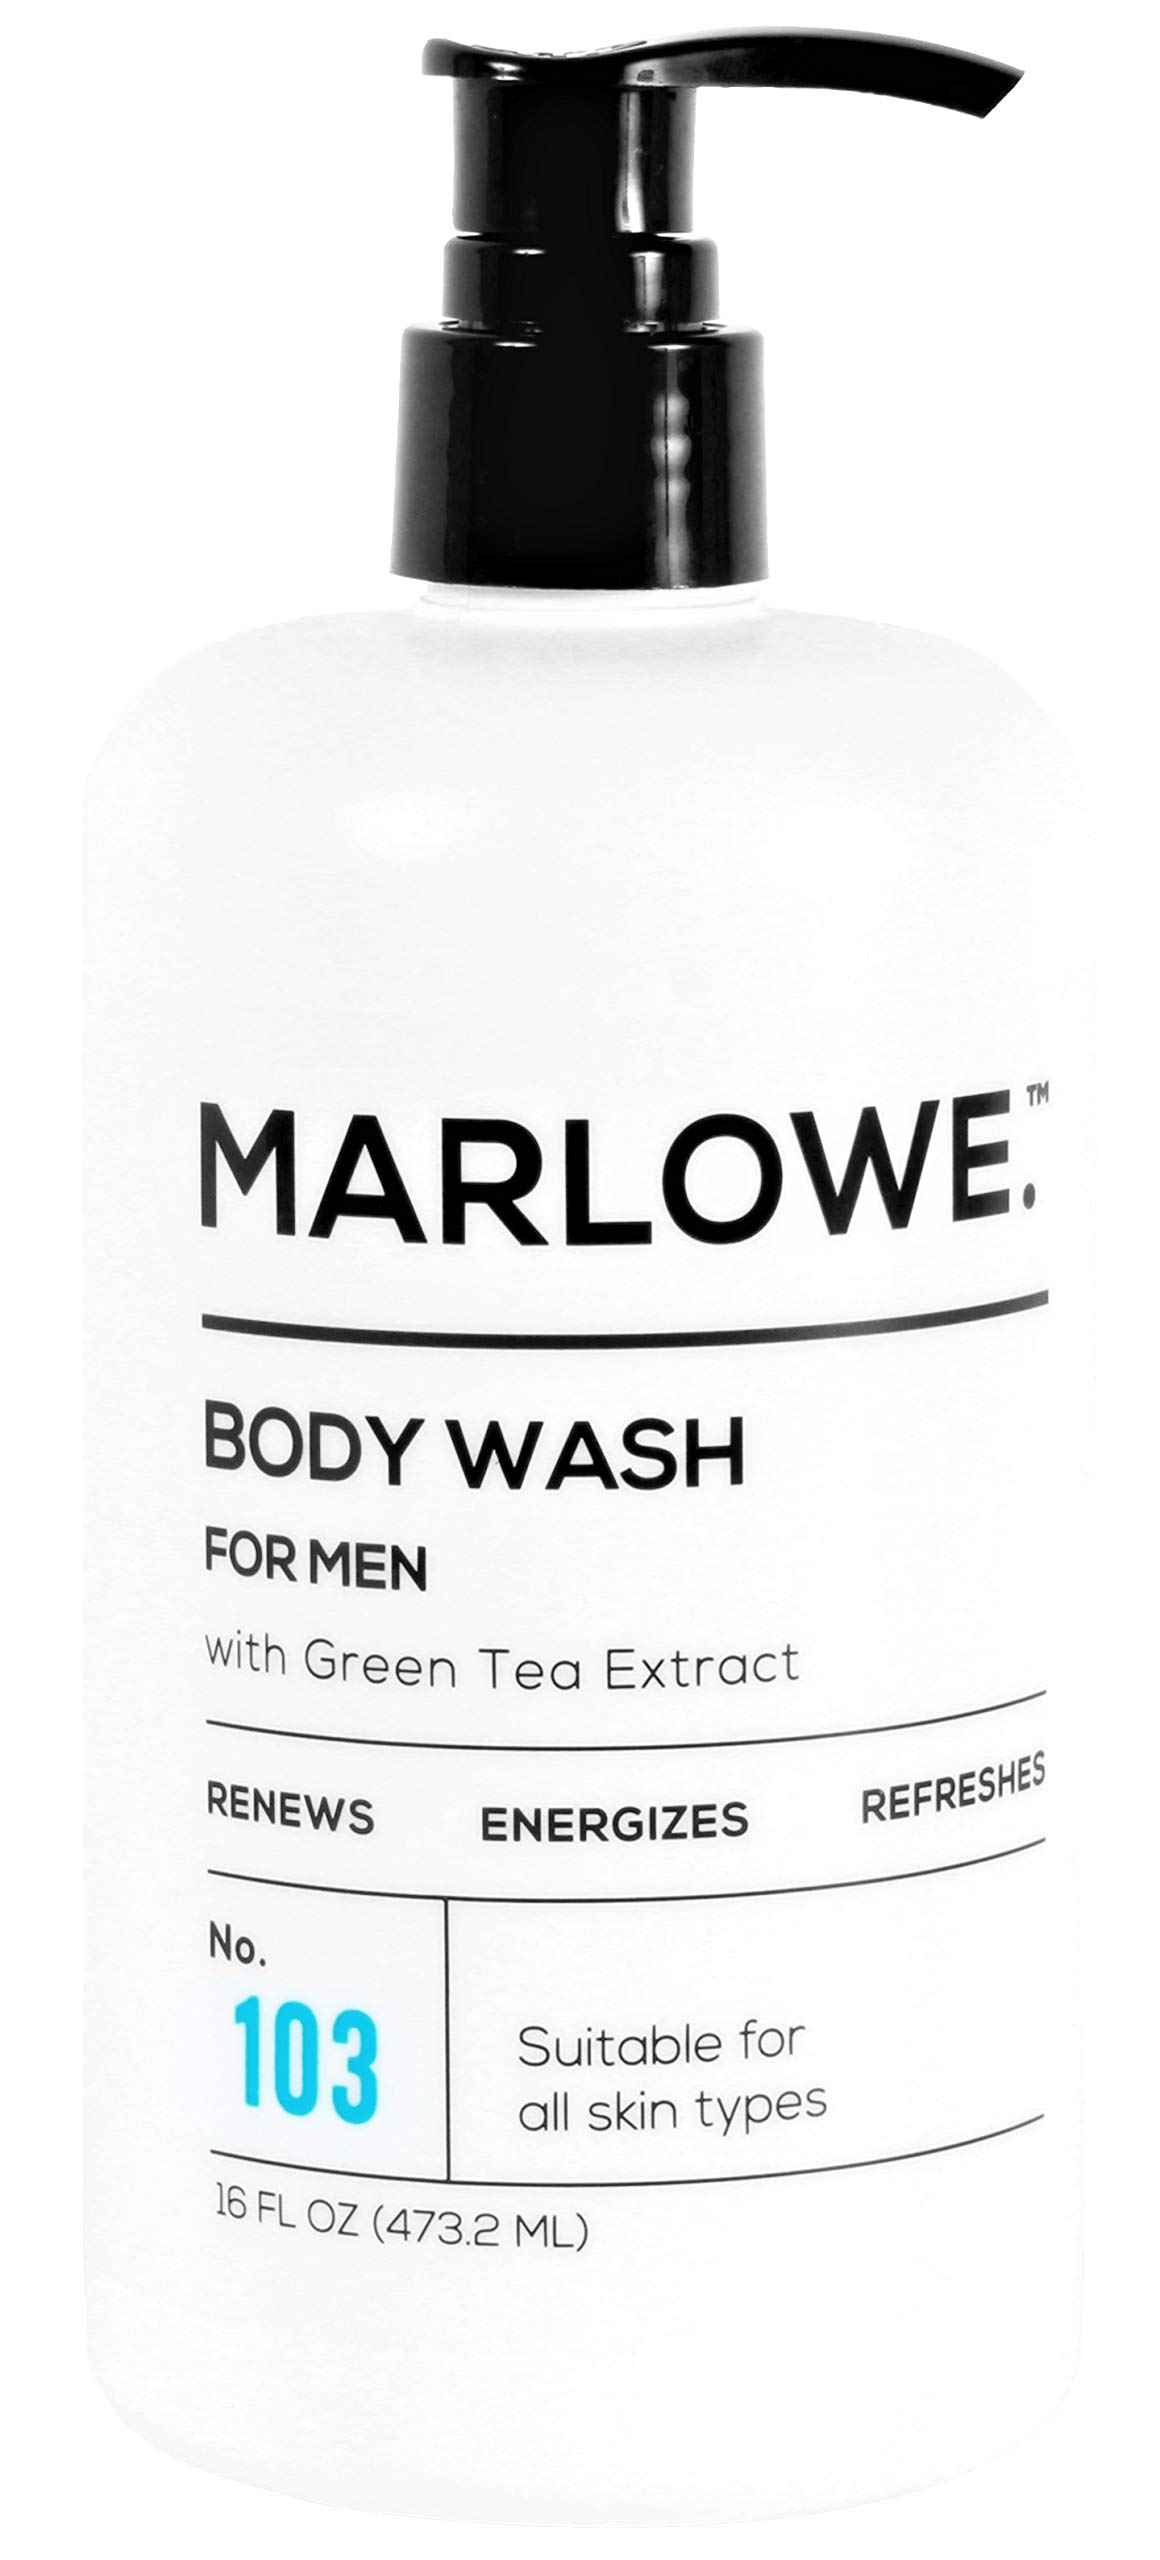 MARLOWE. No. 103 Men's Body Wash 16 oz   Energizing & Refreshing   Made with Natural Ingredients   Aloe & Green Tea Extracts by MARLOWE. M BLEND